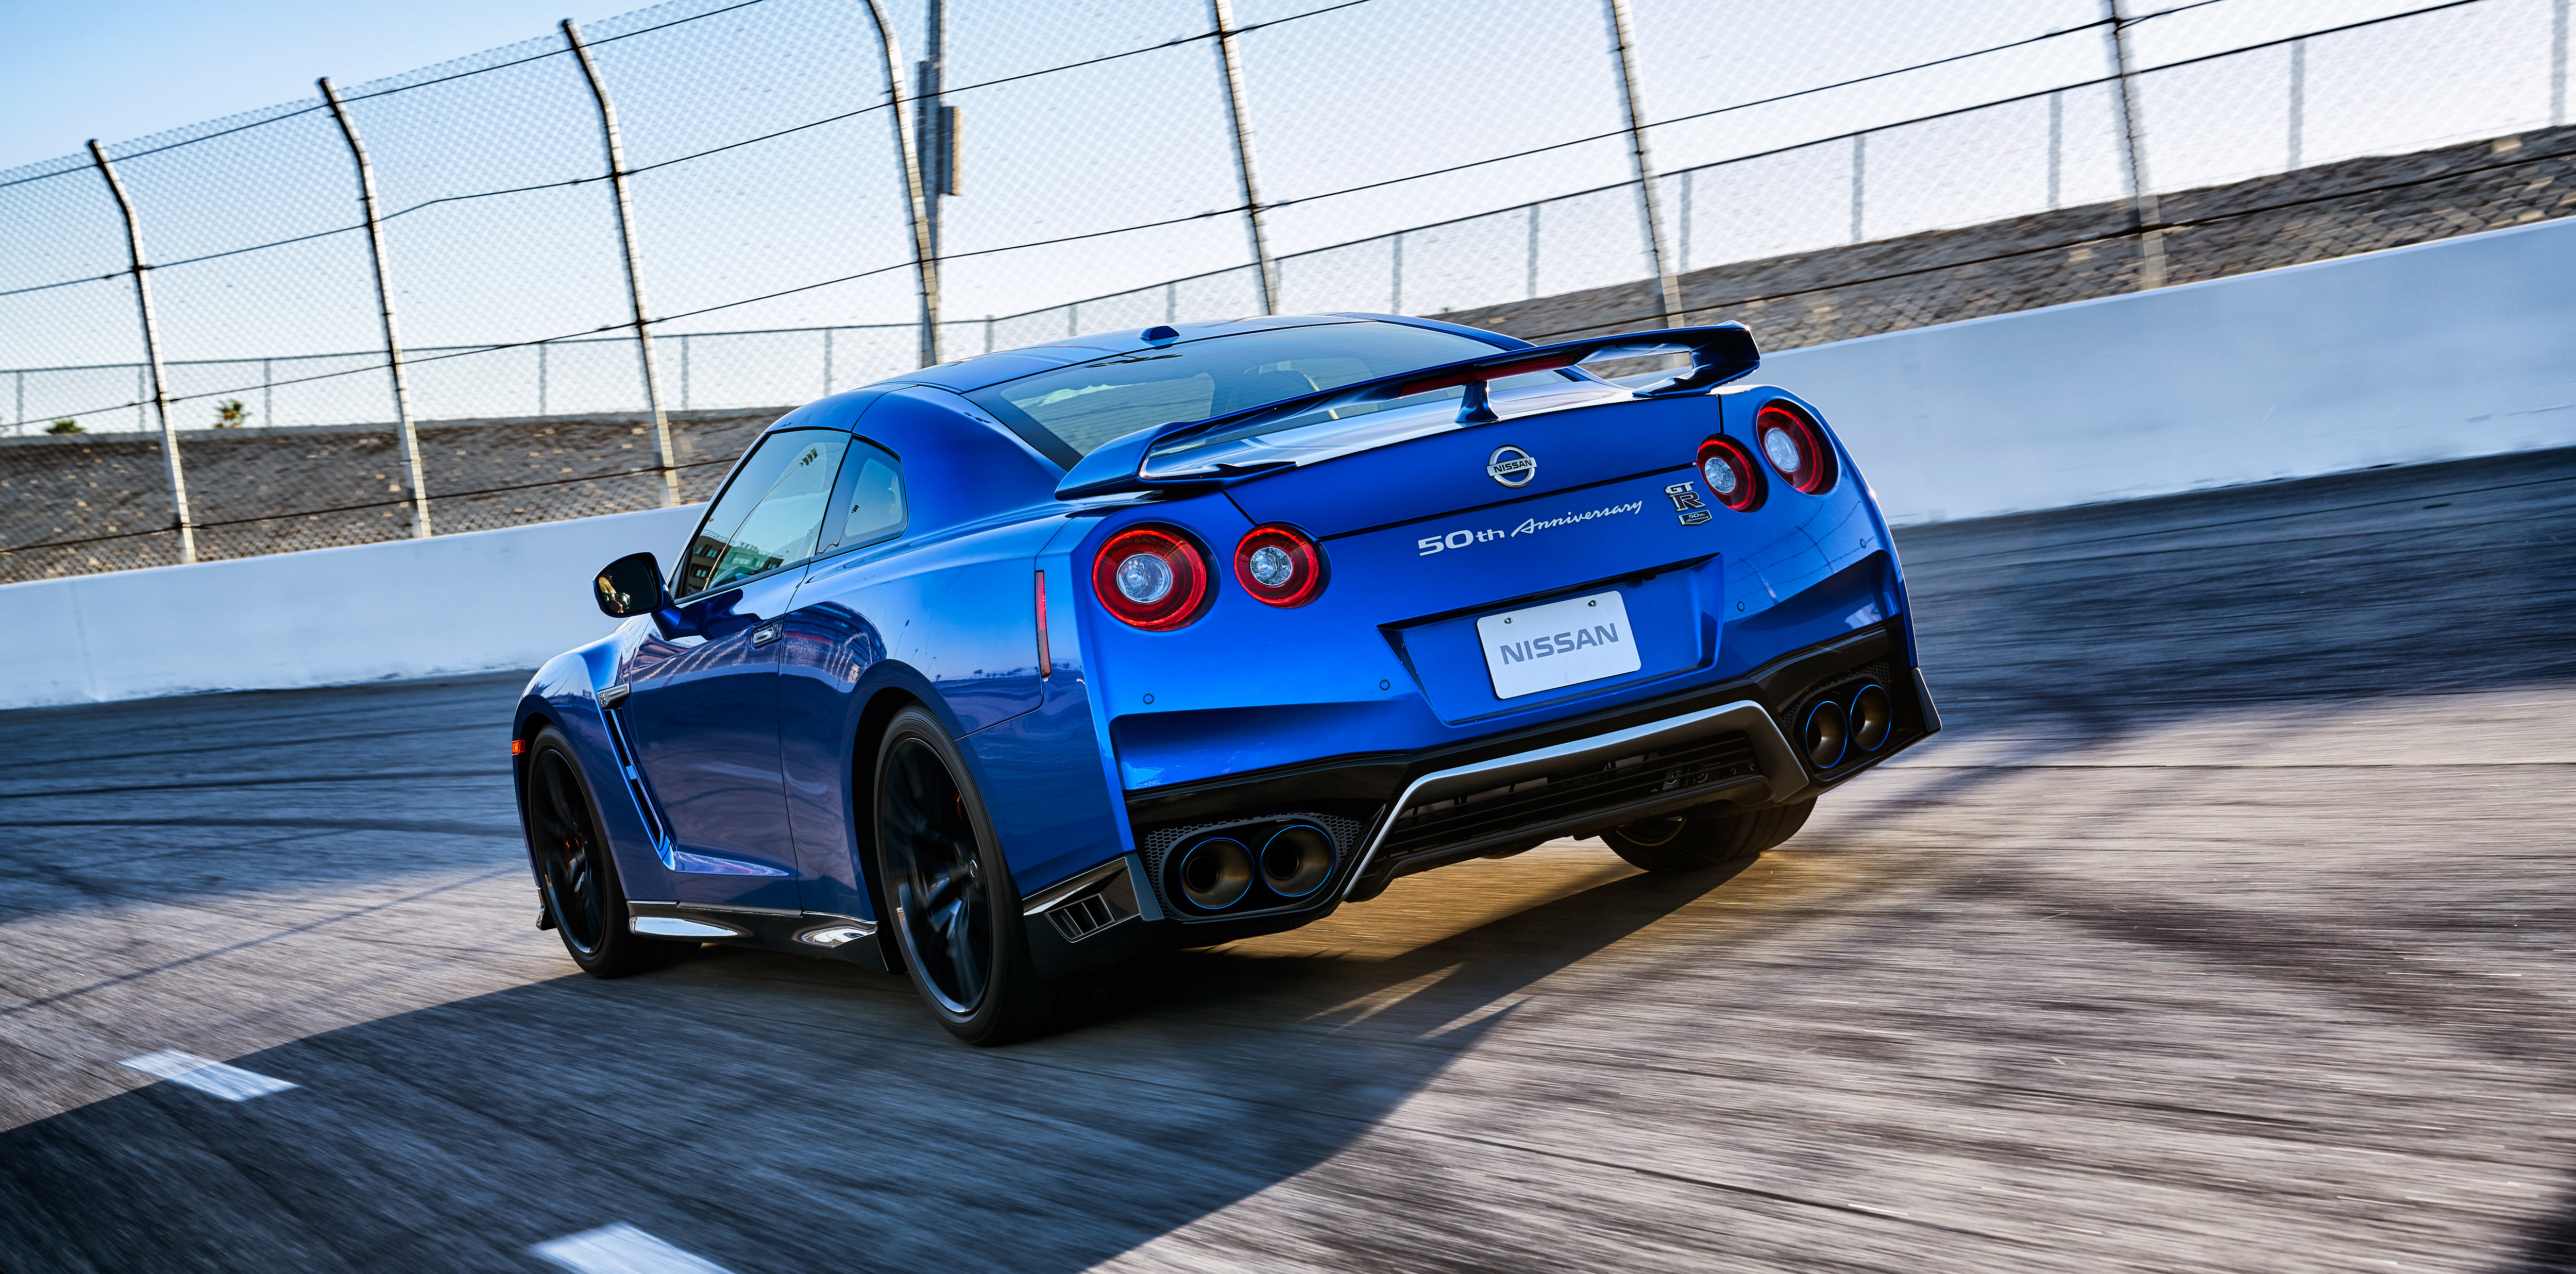 2020 Nissan GT-R 50th Anniversary Edition - HD Pictures ...